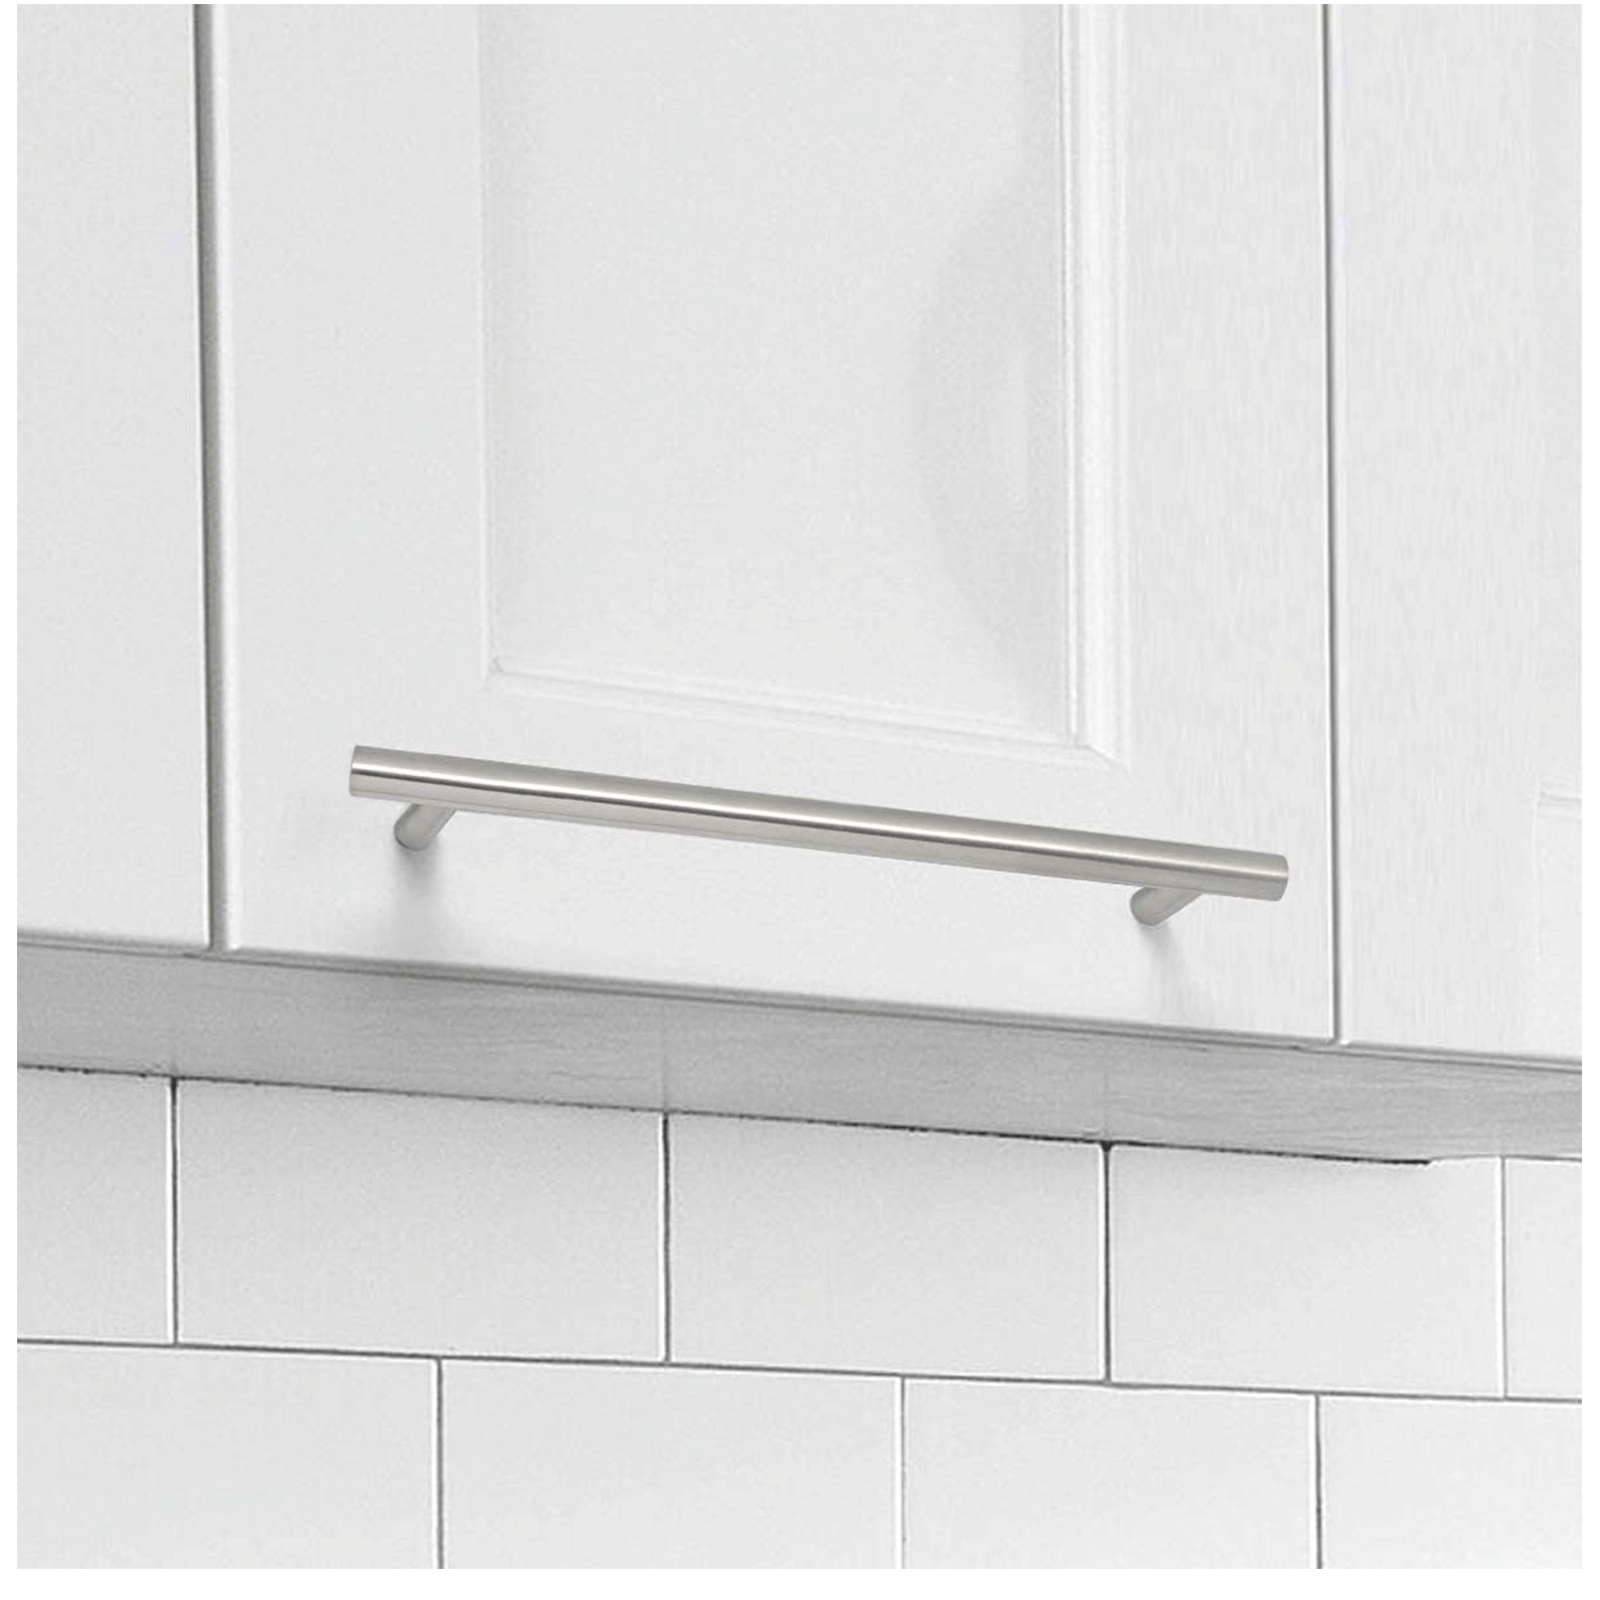 5Pack Euro T Bar Pulls for Cabinets, Brushed Stainless ...